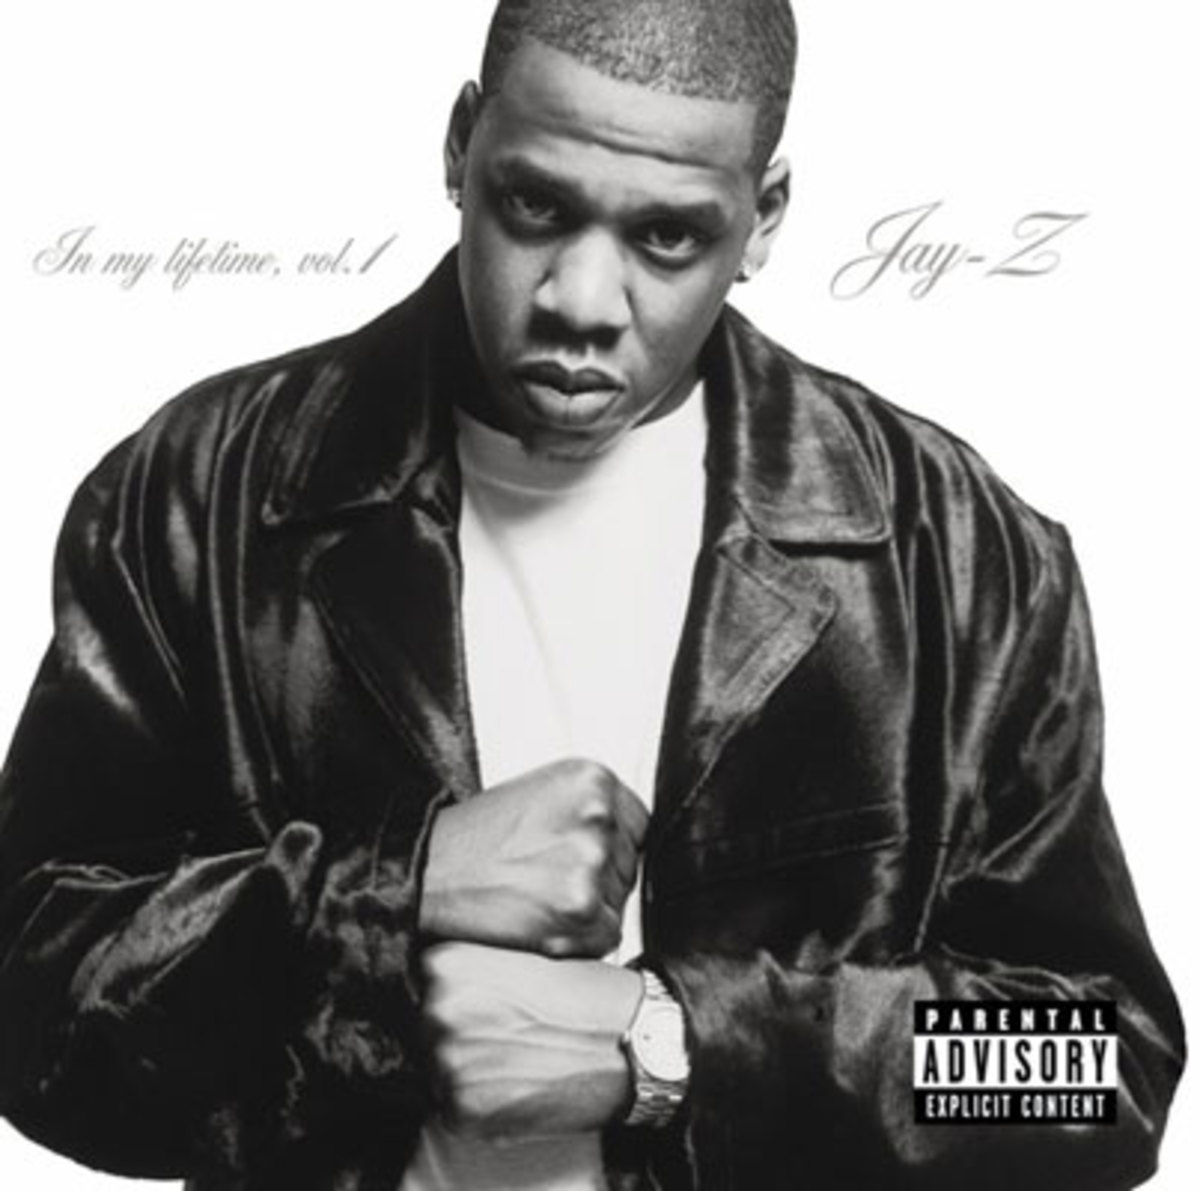 jay-z-vol1-cover.jpg